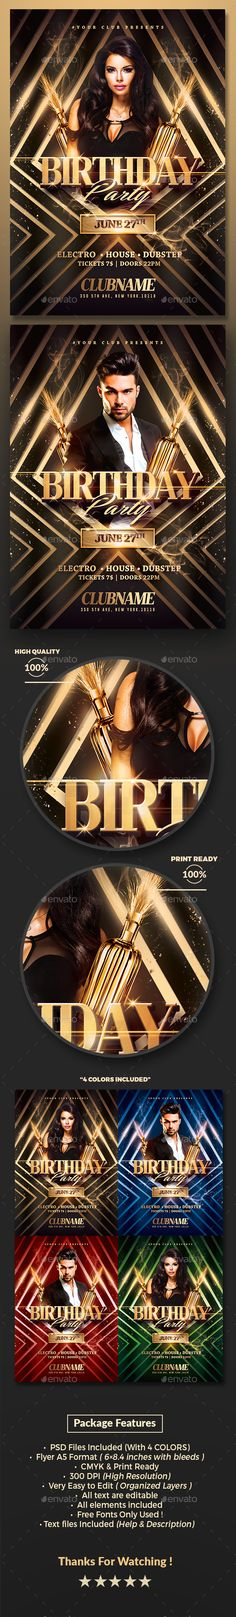 Gold Birthday Party Flyer Template PSD. Download here: http://graphicriver.net/item/gold-birthday-party-psd-flyer-template/15672687?ref=ksioks